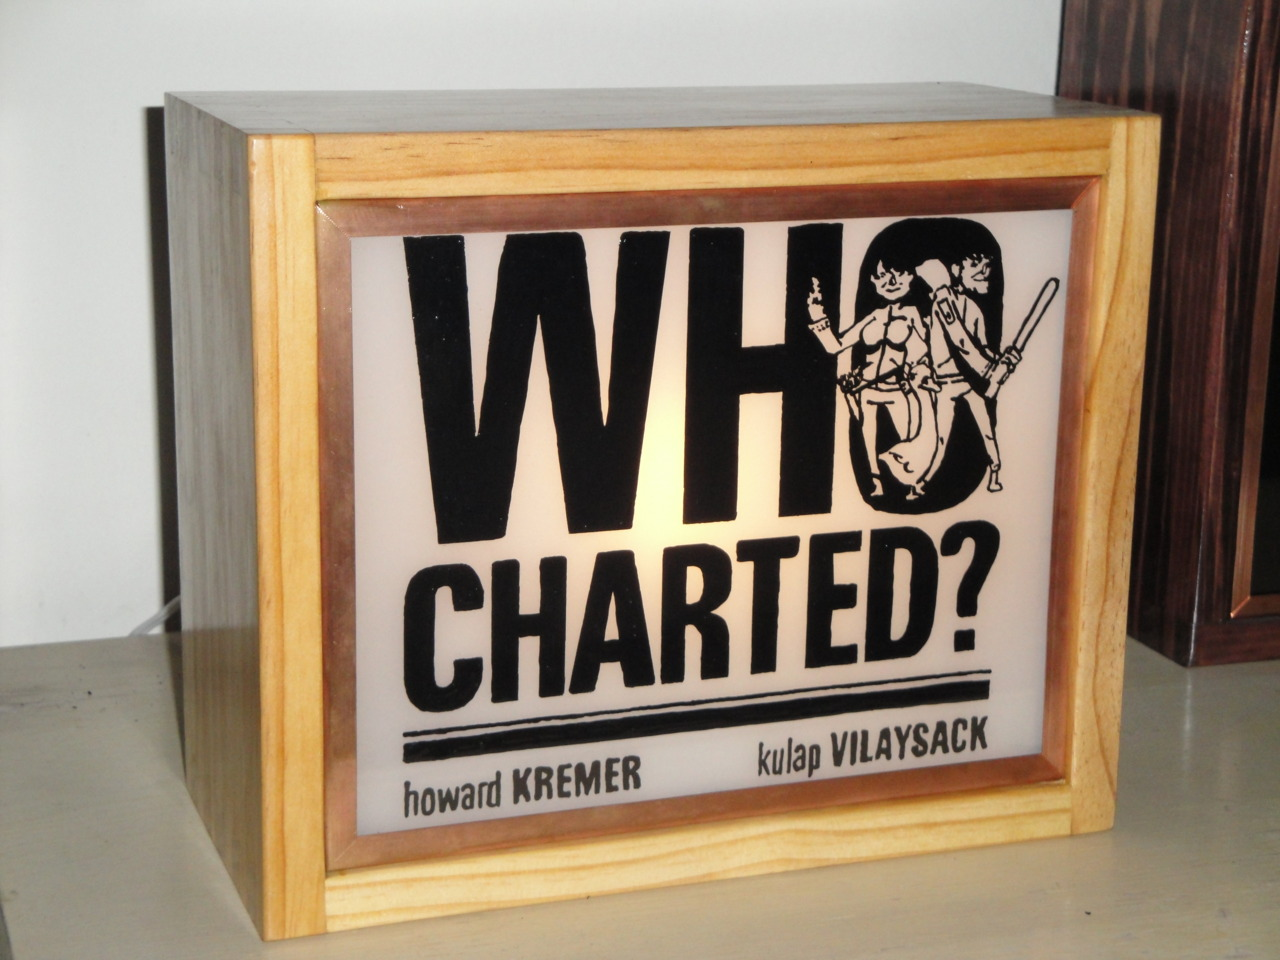 kulap-comedylightbox-heres-a-who-charted.jpeg